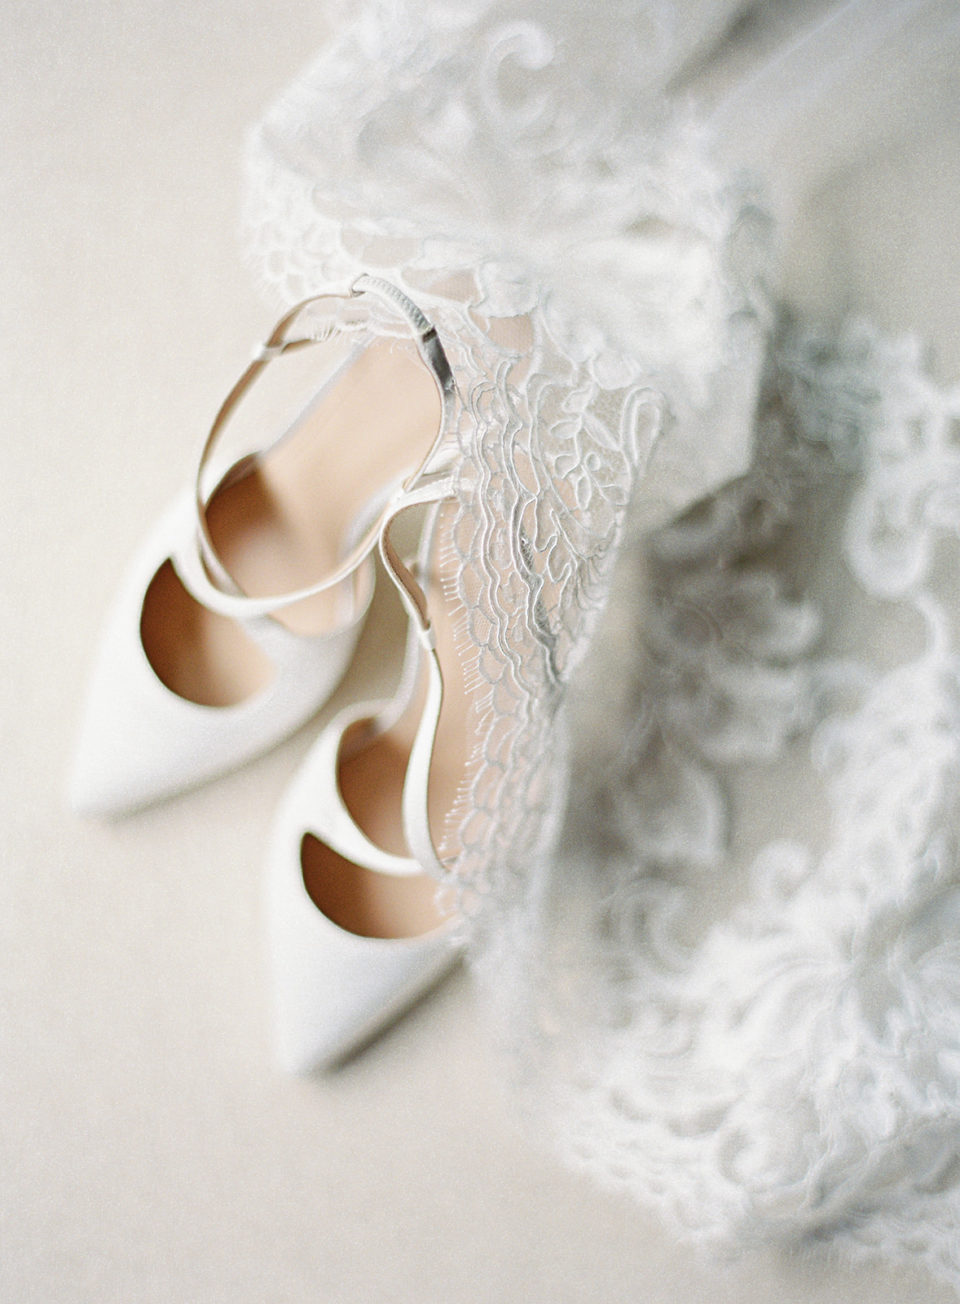 detail shots shoes lace dress